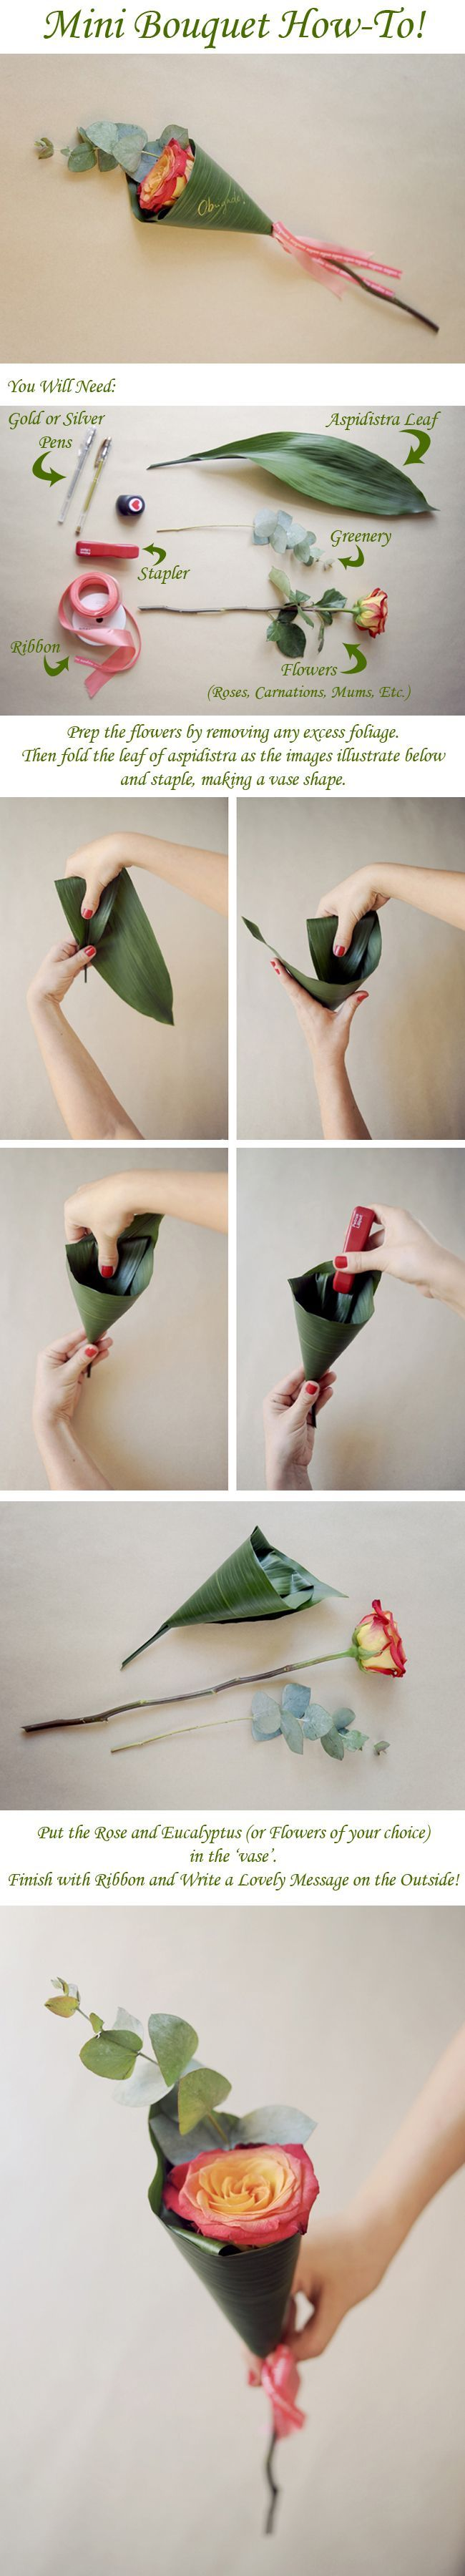 Mini Bouquet How-To